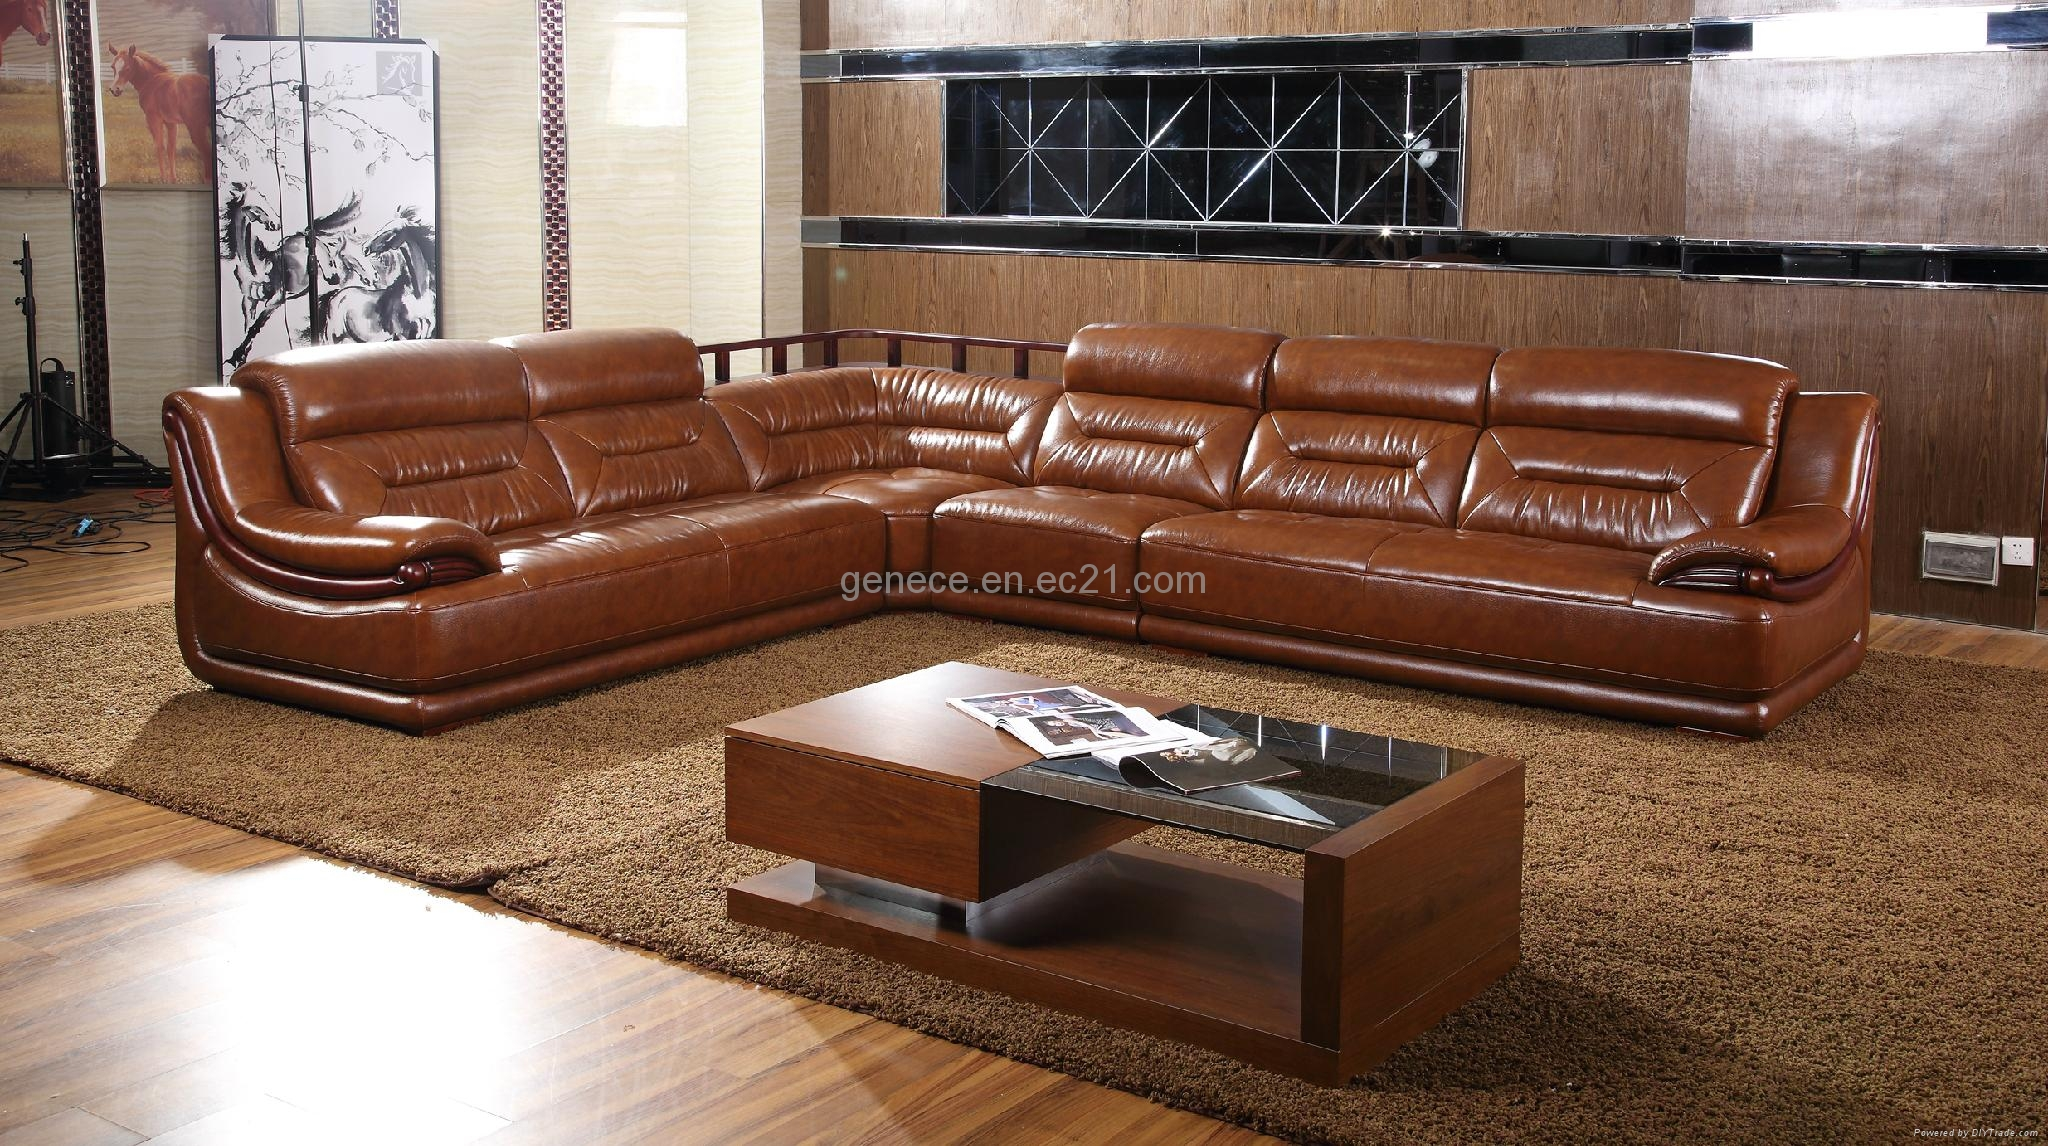 Top grain cow leather sofa wooden secitonal sofa quality - Best quality living room furniture ...